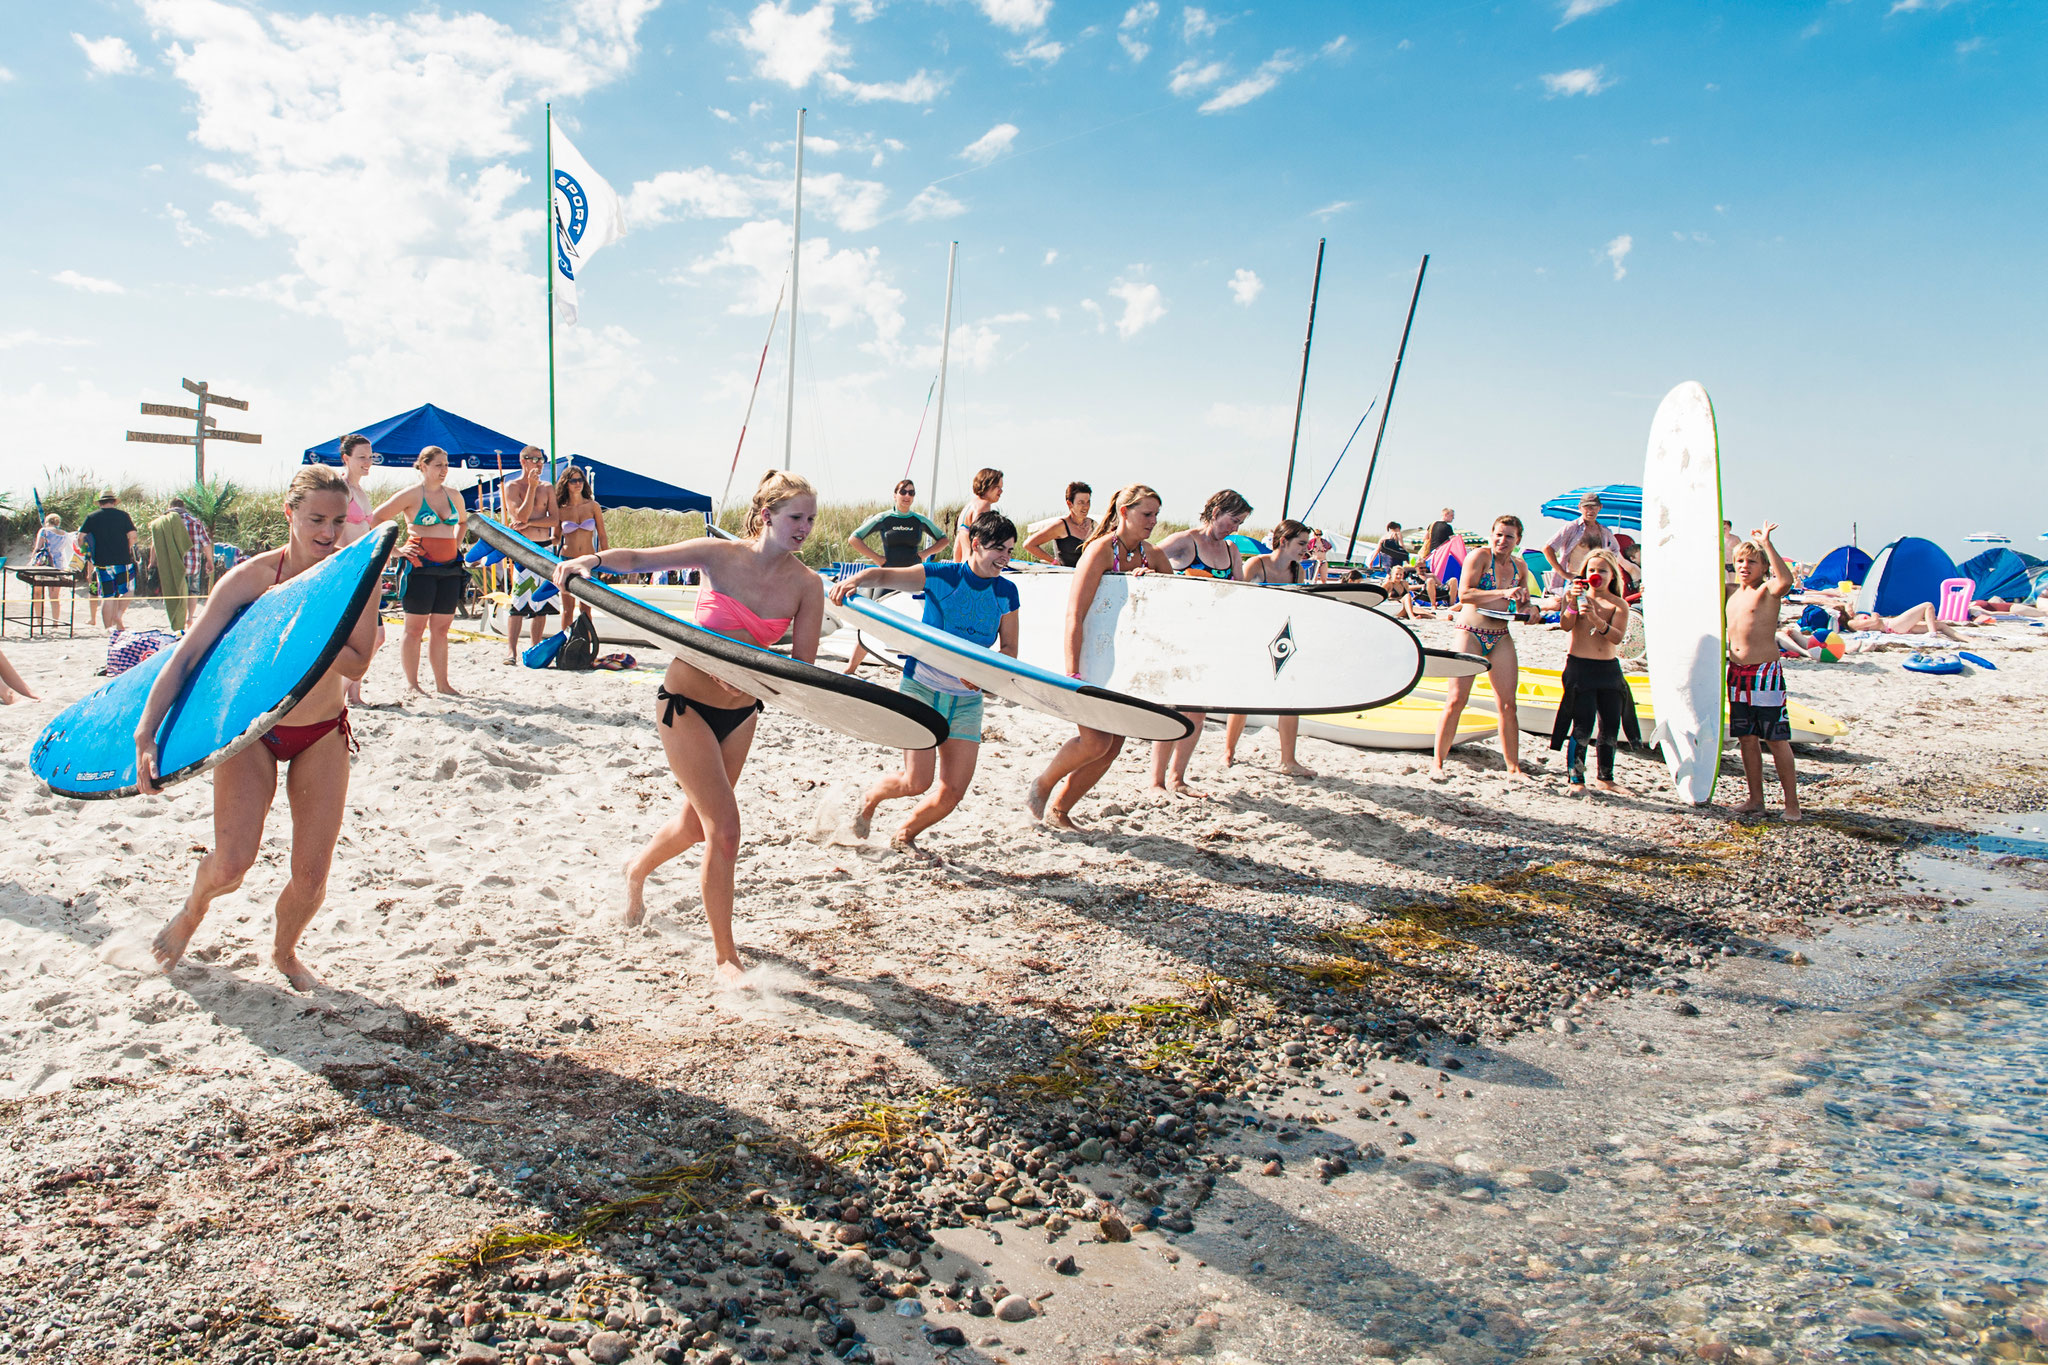 SurfSprotte Surf Girls Camp - Start des Paddelrennens. ©Erik Schlicksbier